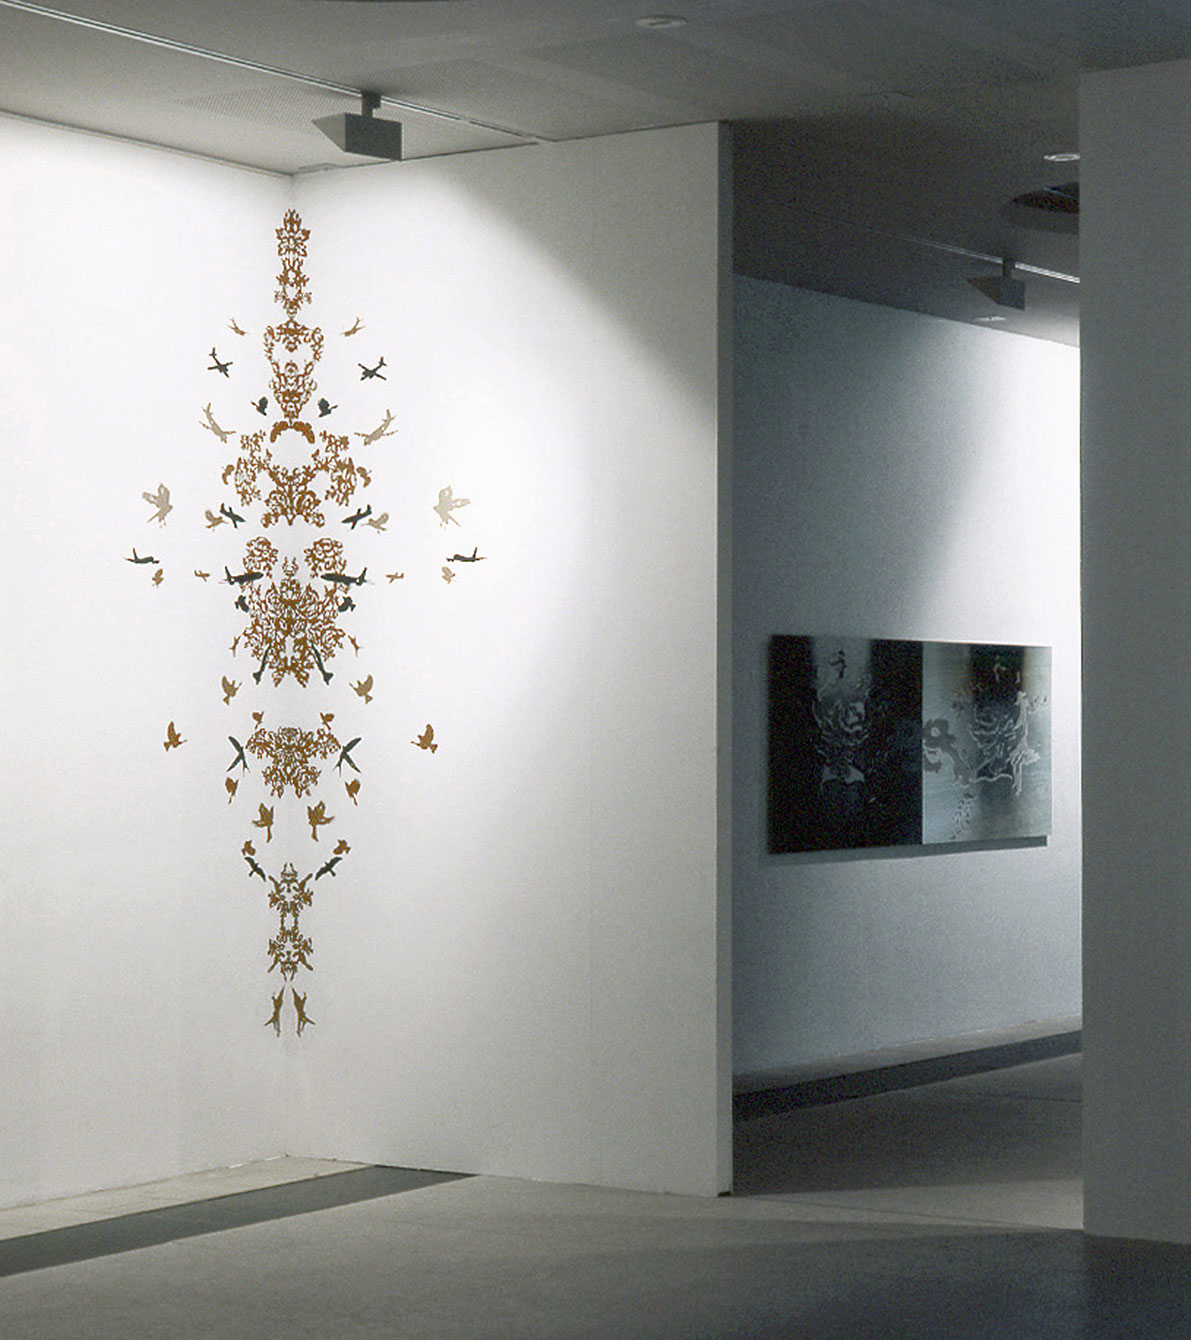 Installation view of the exhibition, Mnemonic II, hand cut sticker ornament on wall, size: 250 x 70, Replica I, c-print, size: 90 x 260 cm